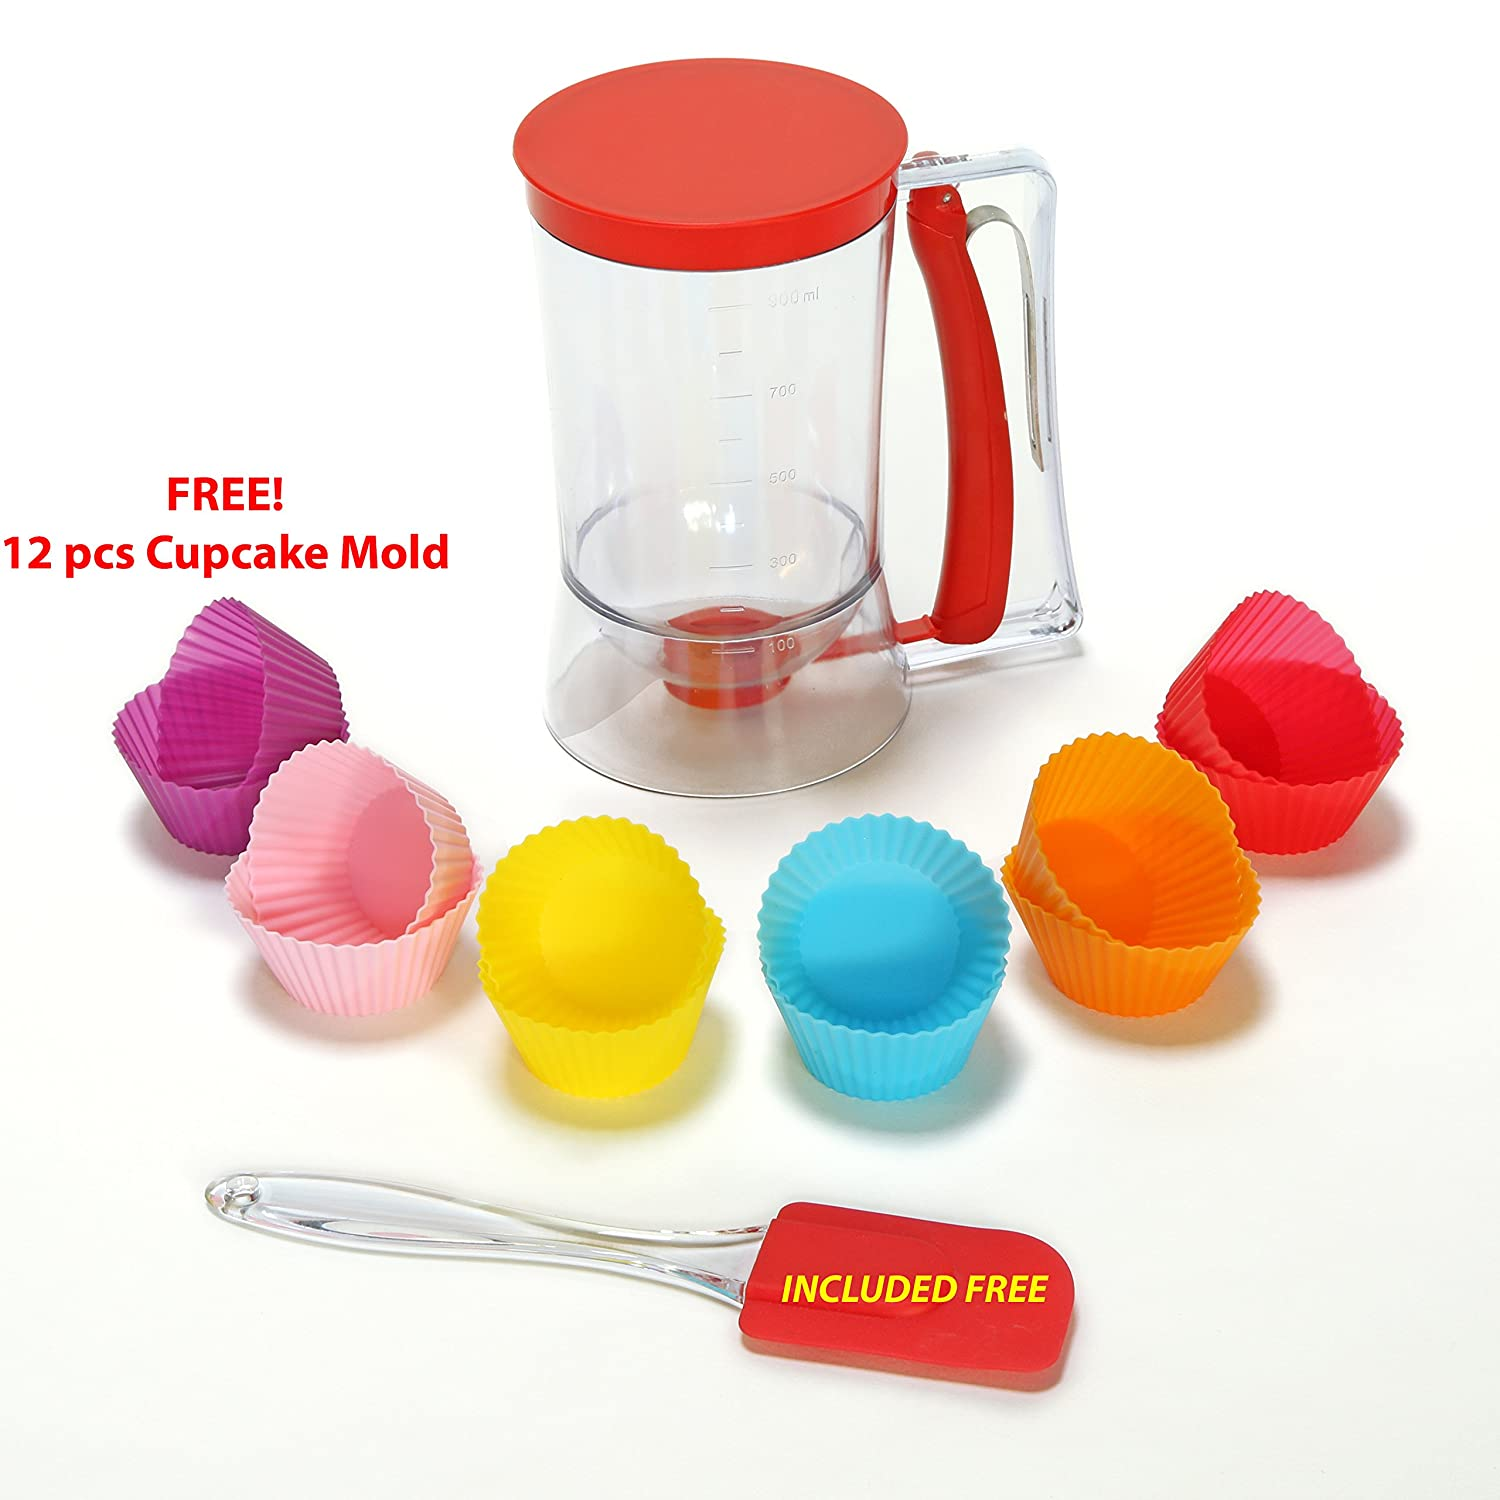 ARUBA PRODUCTS ONLINE Cupcake pancake batter plastic dispenser for Cupcake, Waffles, Muffin Mix, Crepes, Cake and baking Pastries. plus Spatula, 12 pcs Cupcake Mold and Ebook